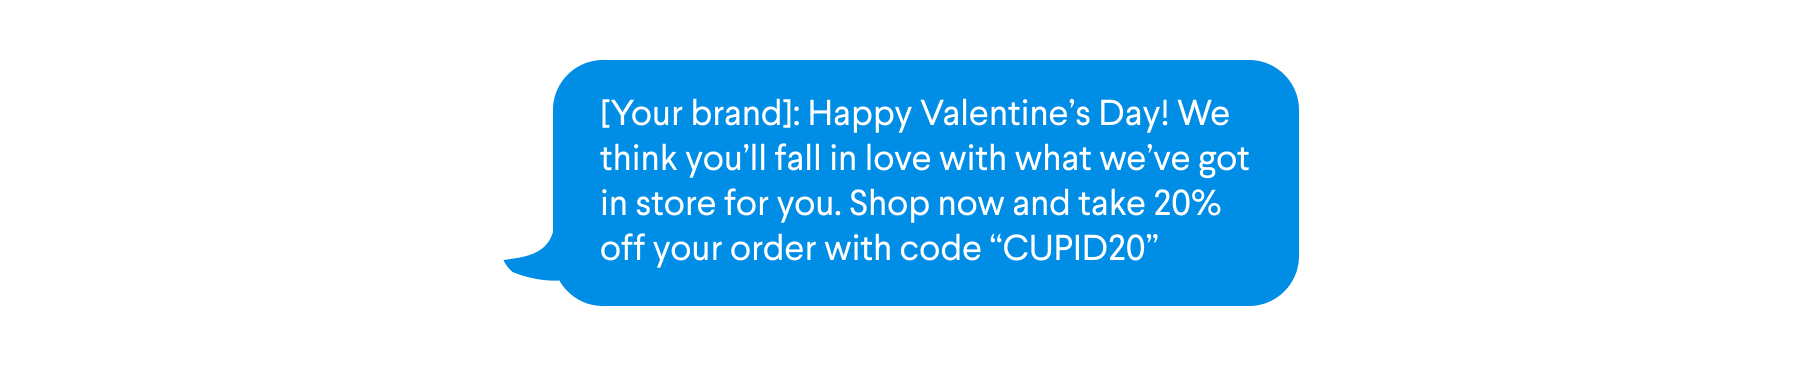 Sample text message for SMS campaign to non-click subscribers to remind them of the Valentine's Day offer